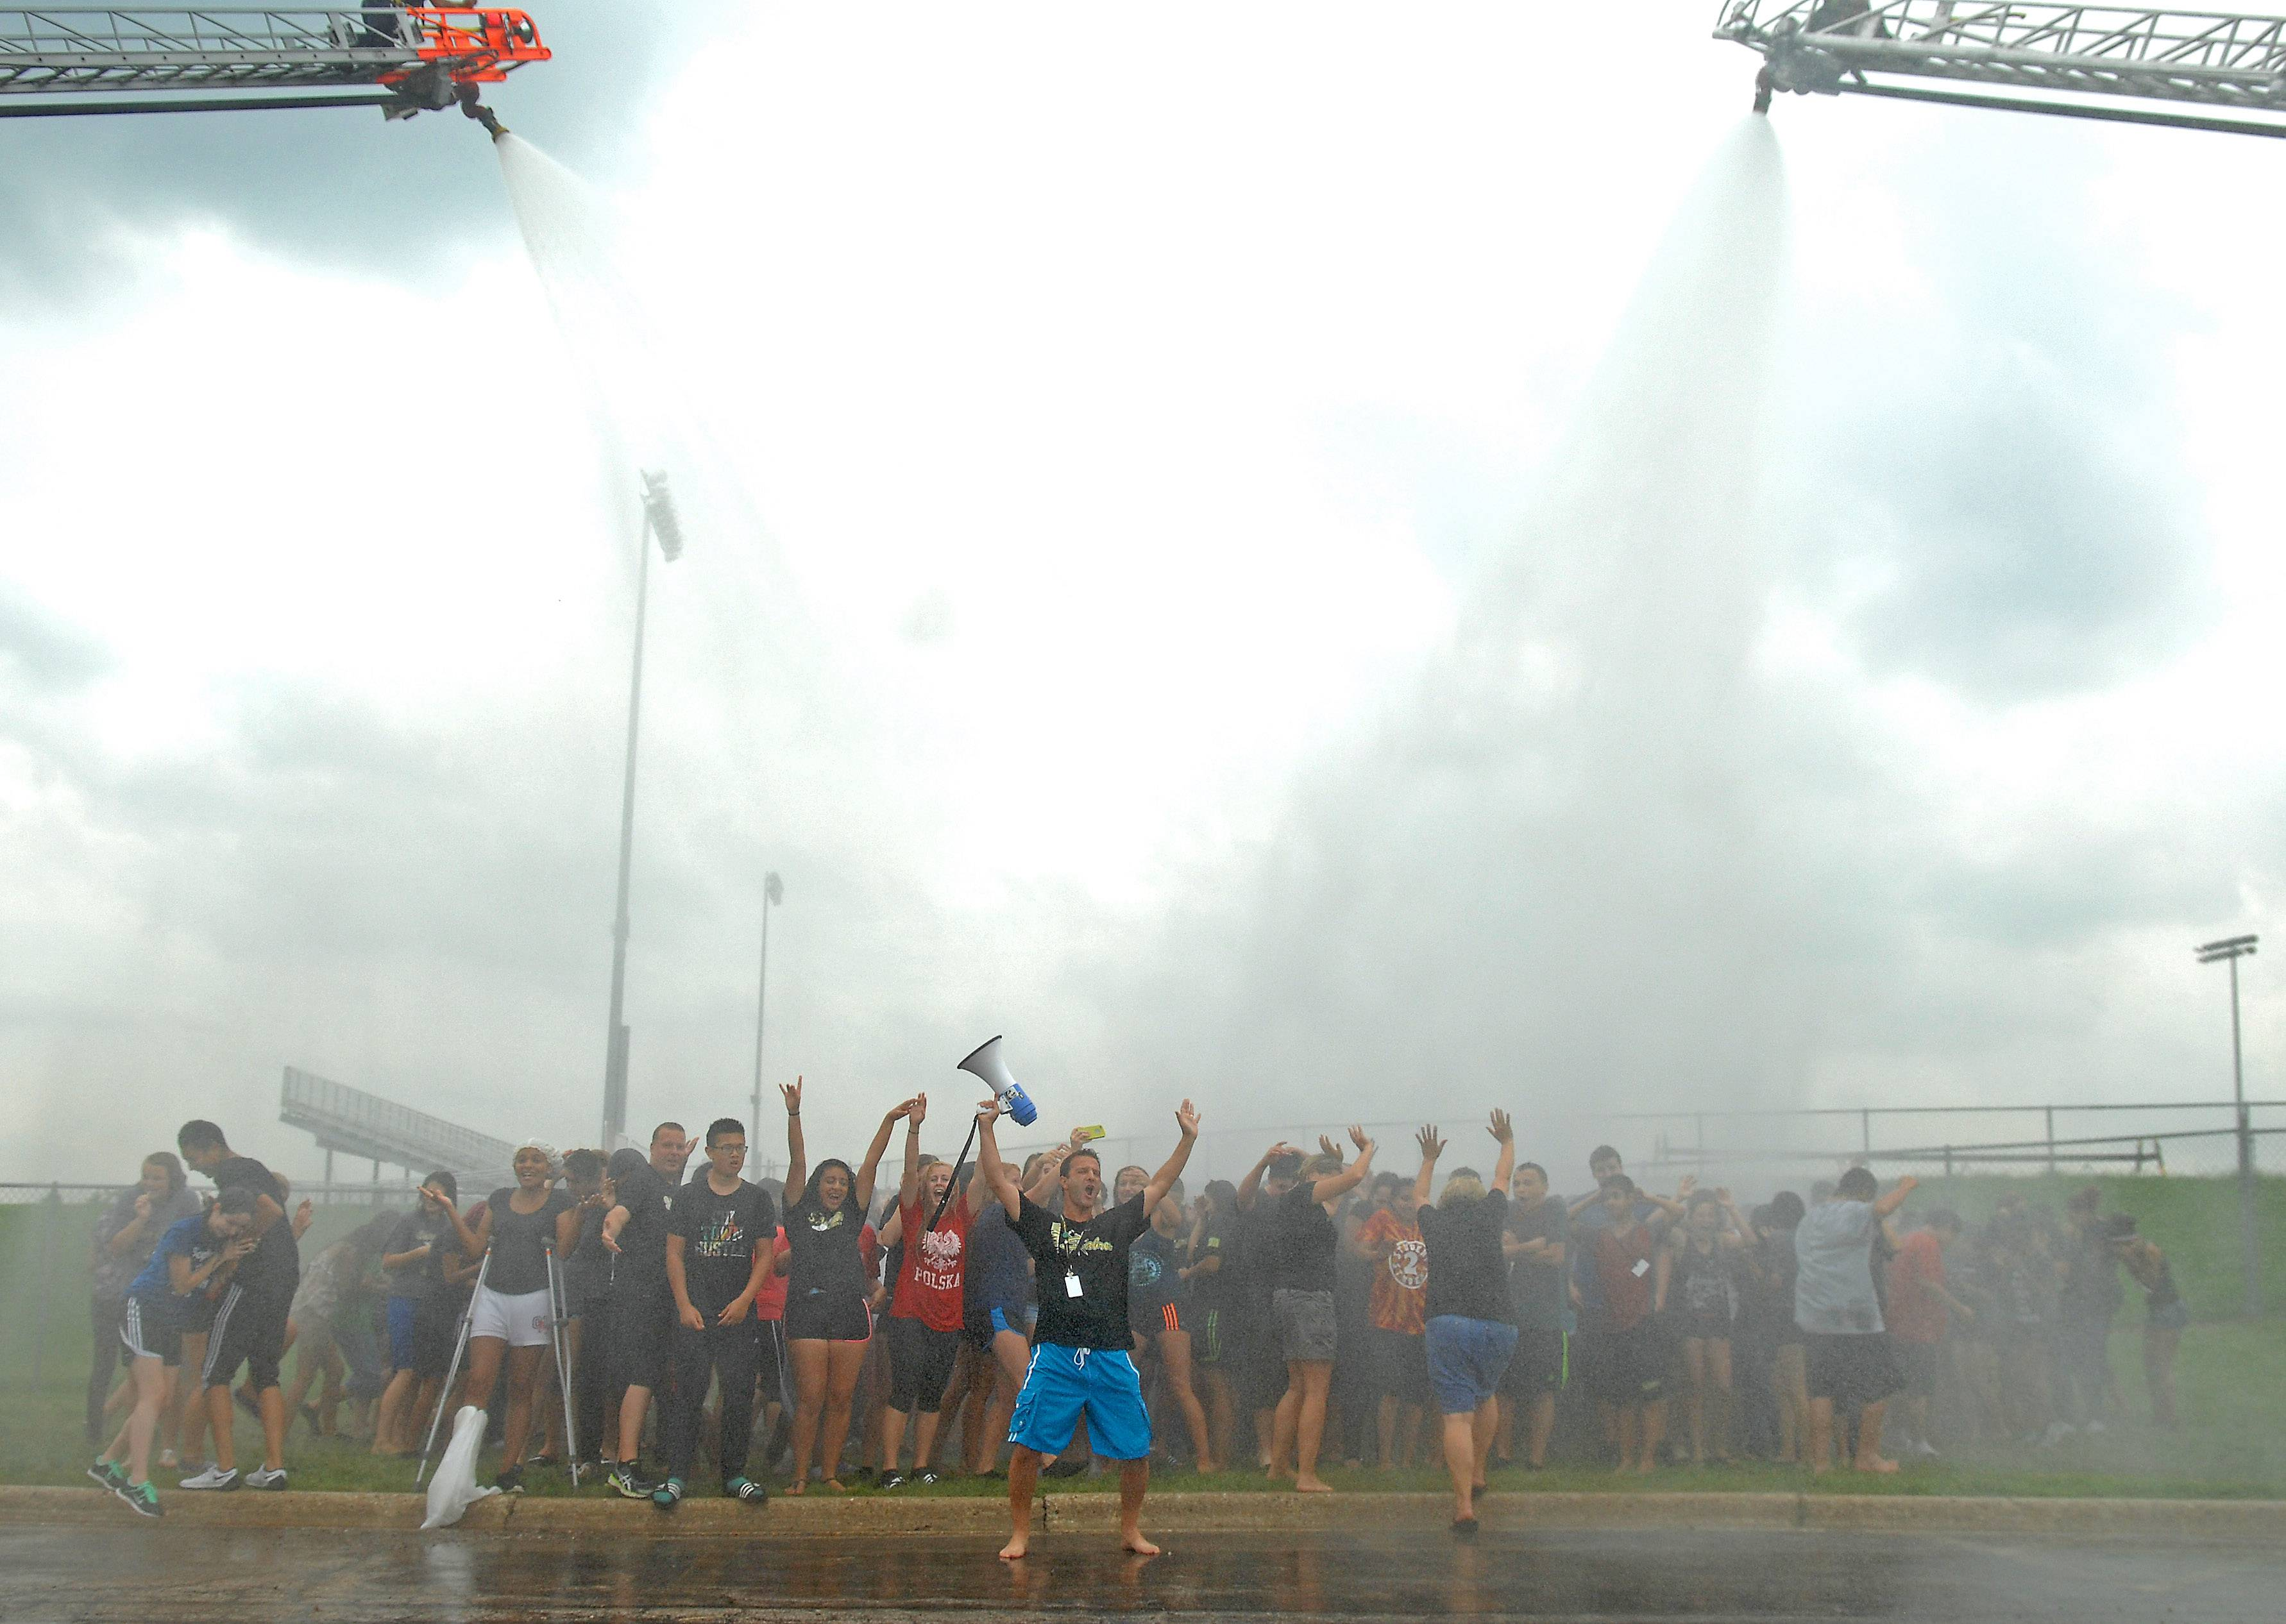 About 400 Streamwood High School students and teachers, including Mike Earone, center with megaphone, are doused by Streamwood firefighters Friday as they accept an ALS Ice Bucket Challenge issued by Principal Terri Lozier.